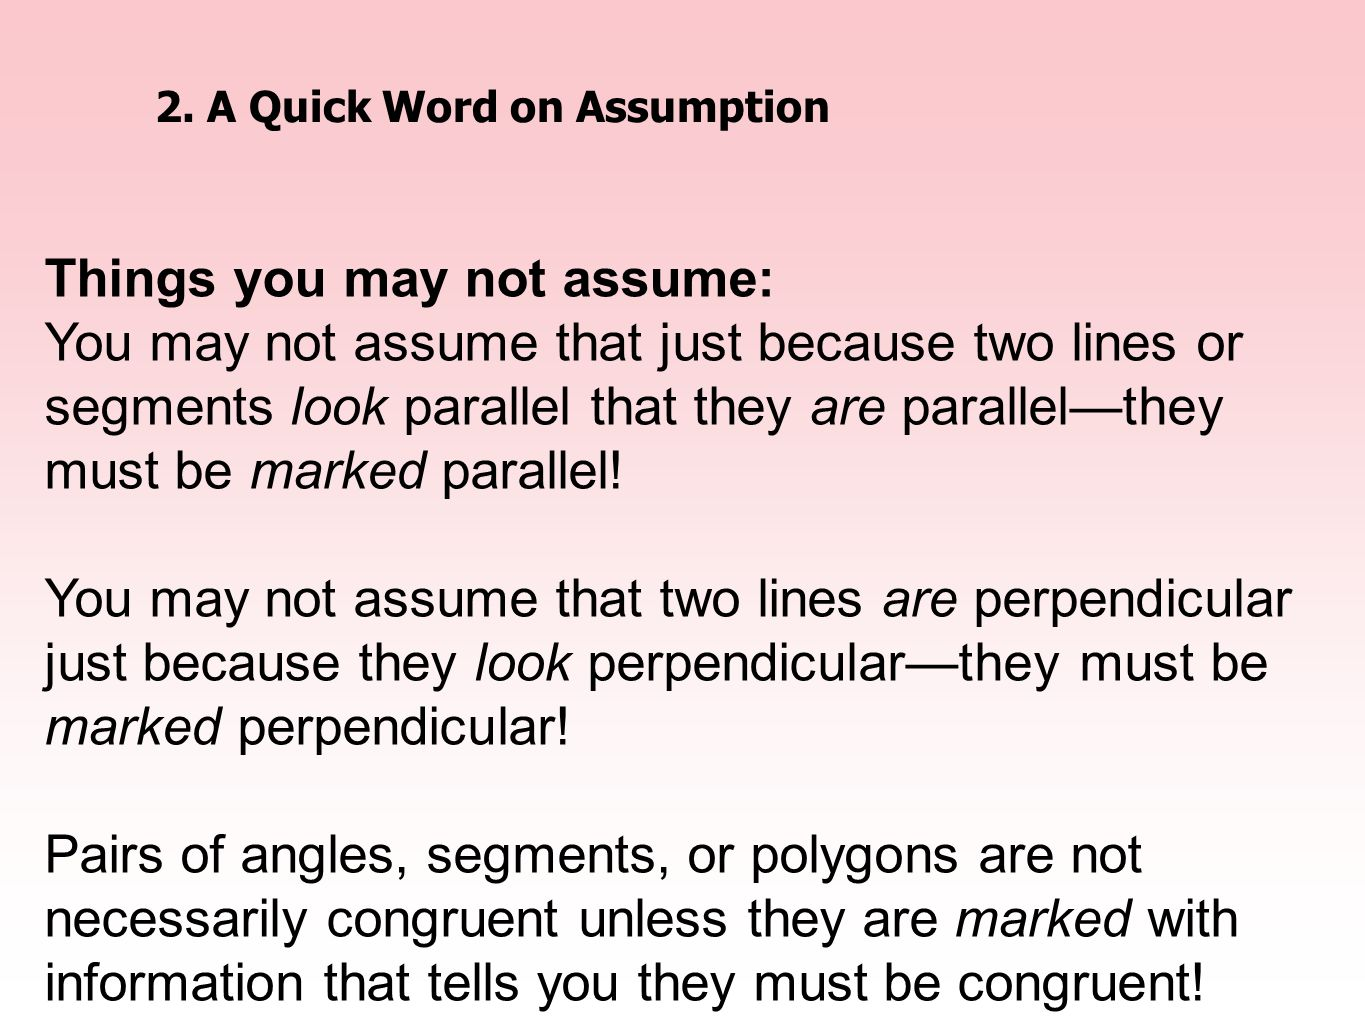 2.A Quick Word on Assumption Things you may not assume: You may not assume that just because two lines or segments look parallel that they are paralle